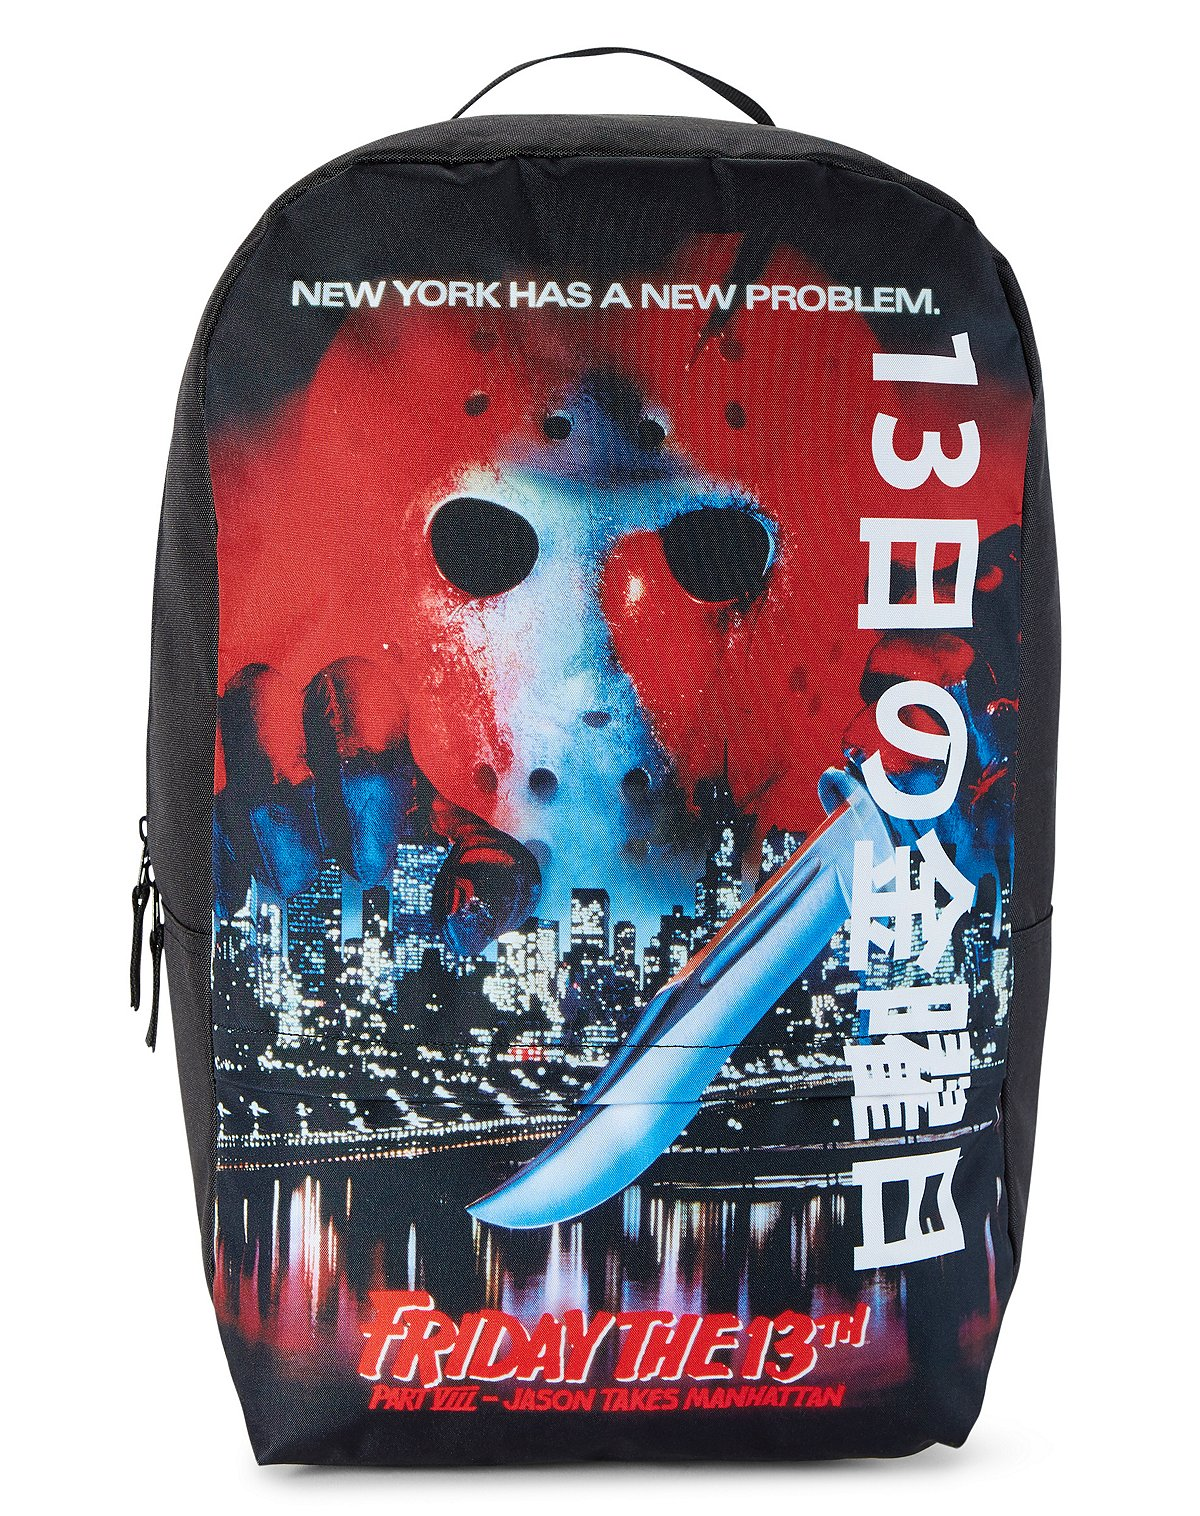 Jason Takes Manhattan Backpack - Friday The 13th